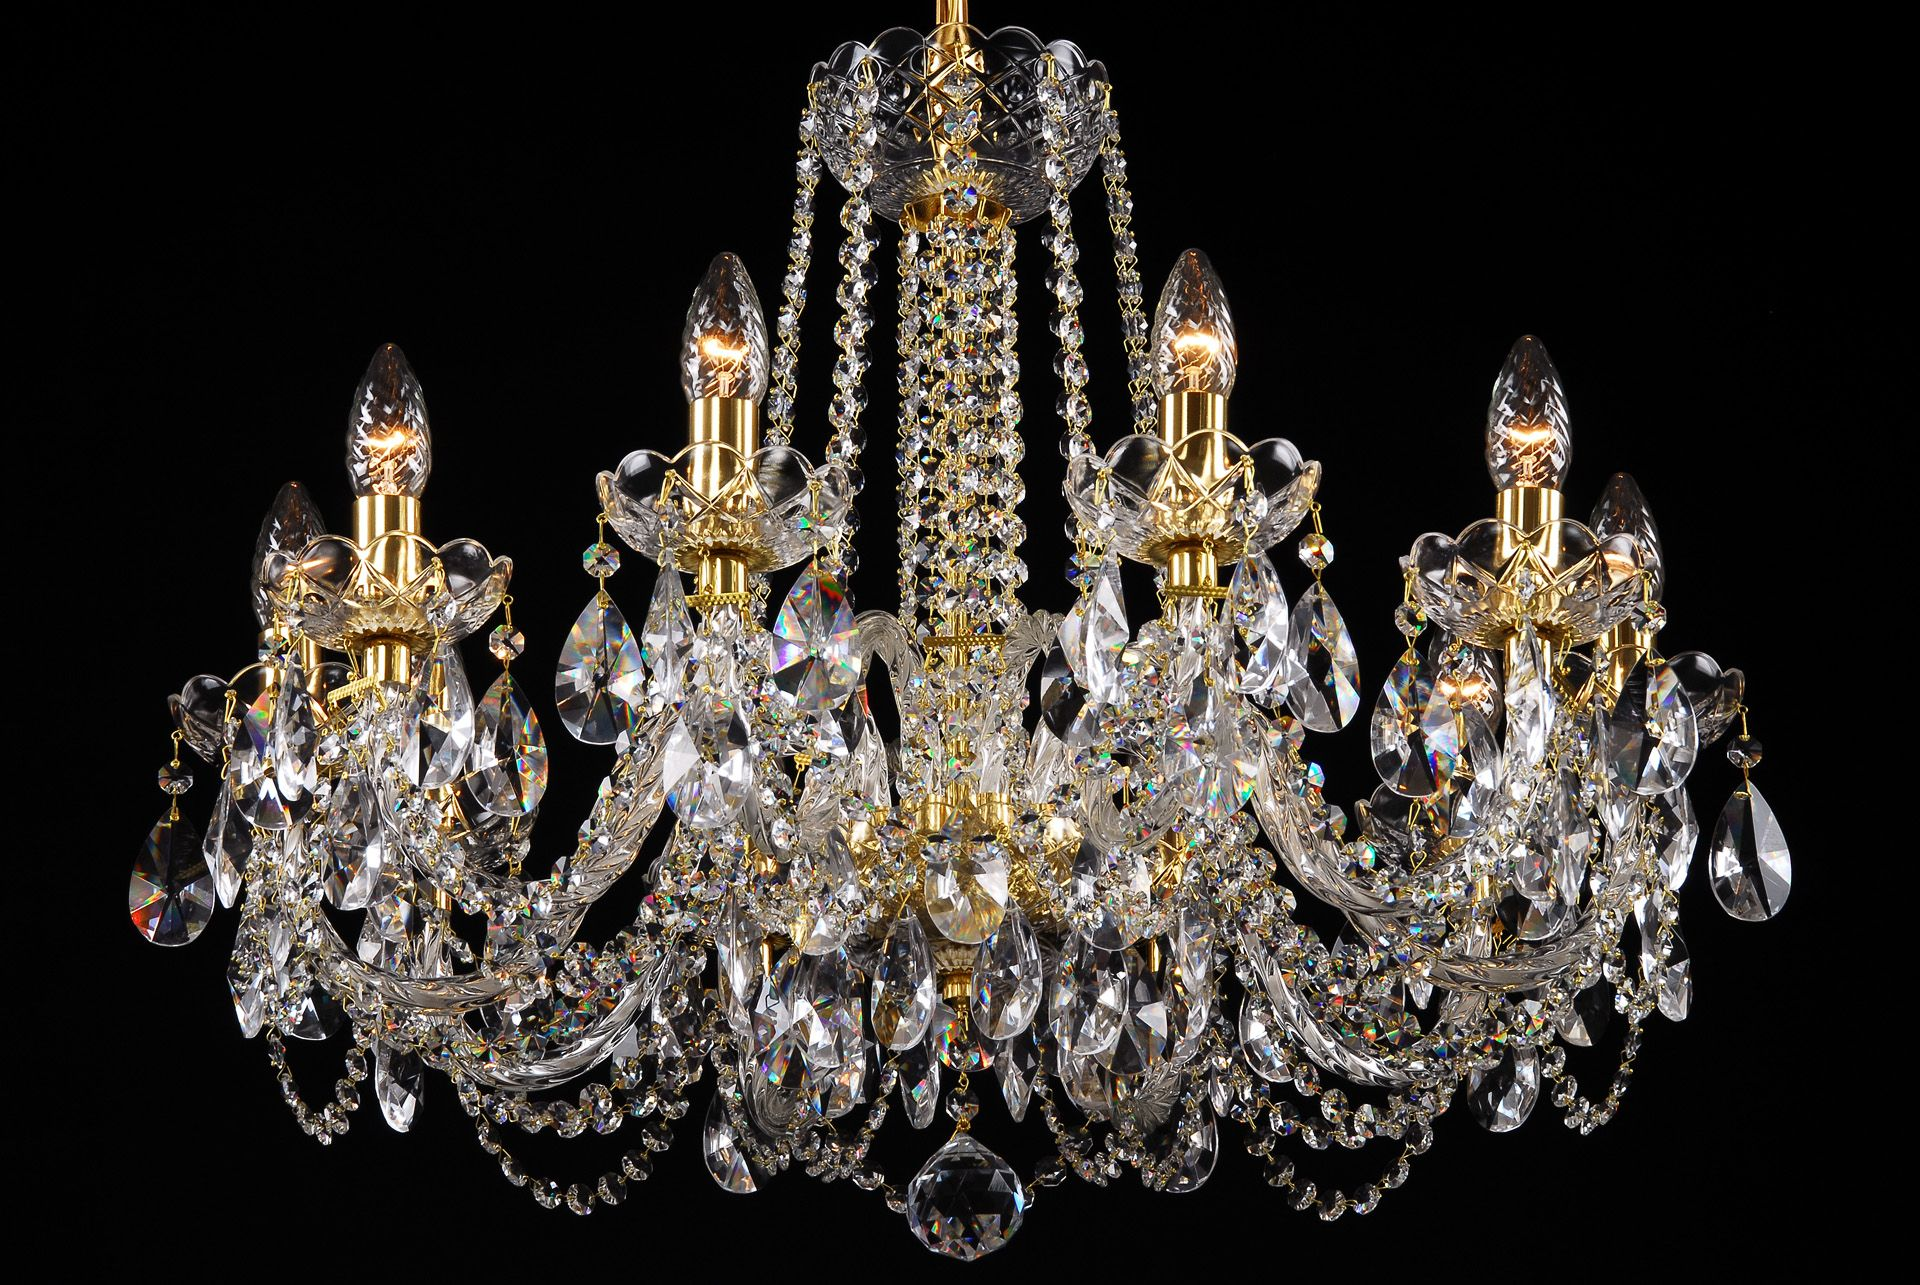 French Empire Crystal Chandelier | Replacement Crystals for Chandelier | Chandelier Crystals